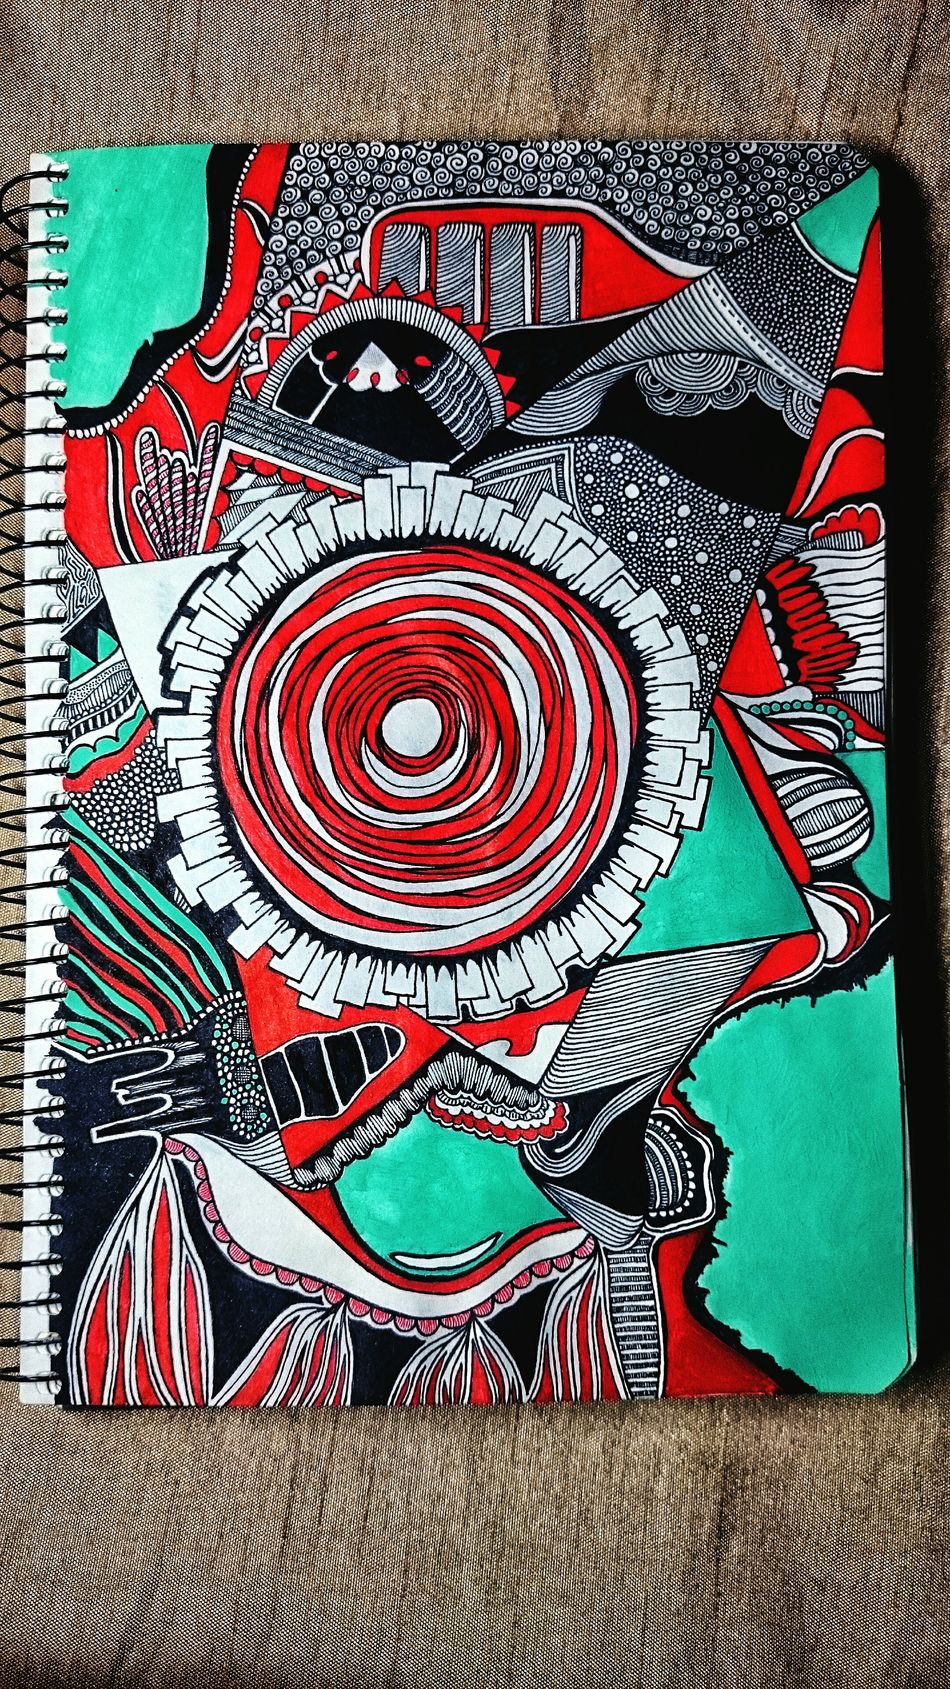 Red Drawing - Art Product Abstract Pencil Drawing EyeEm Free Art Beauty Inspirations ArtWork Illustration Tranquility Paper Sketchbook Sketching Sketch Creativity Ukraine Followme First Eyeem Photo Art, Drawing, Creativity EyeEm Best Shots Green Color Sketch Art Forest